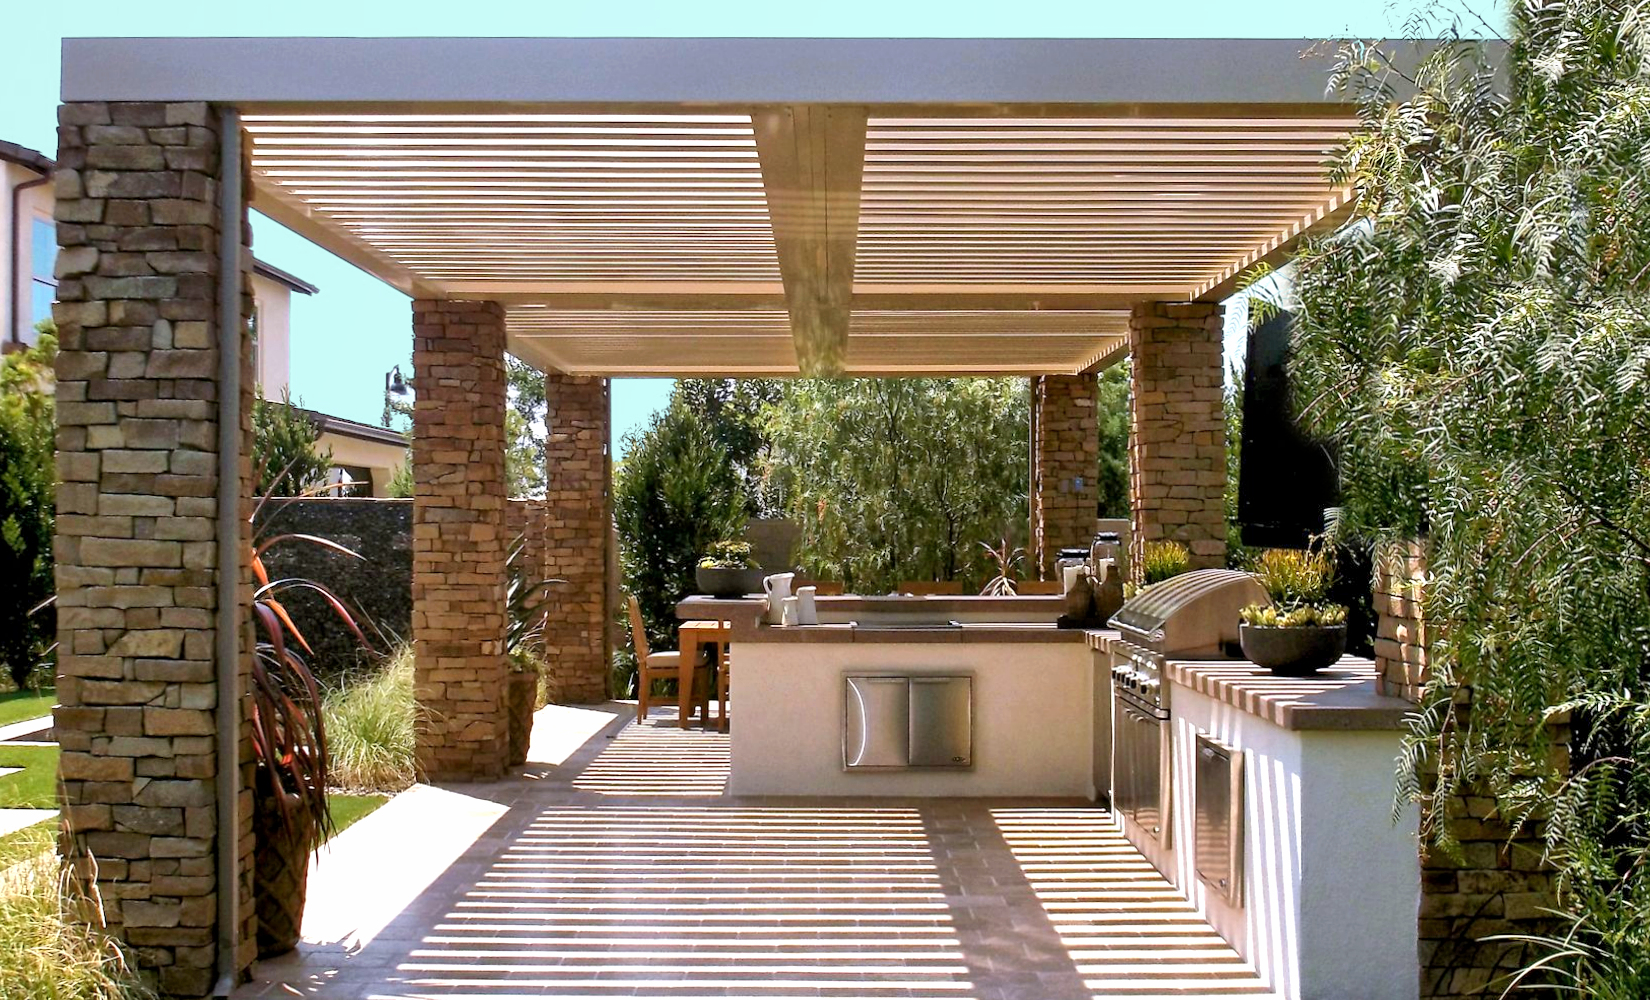 Patio Covers & Enclosures - Artechroofing on Backyard Patio Cover Ideas  id=65999